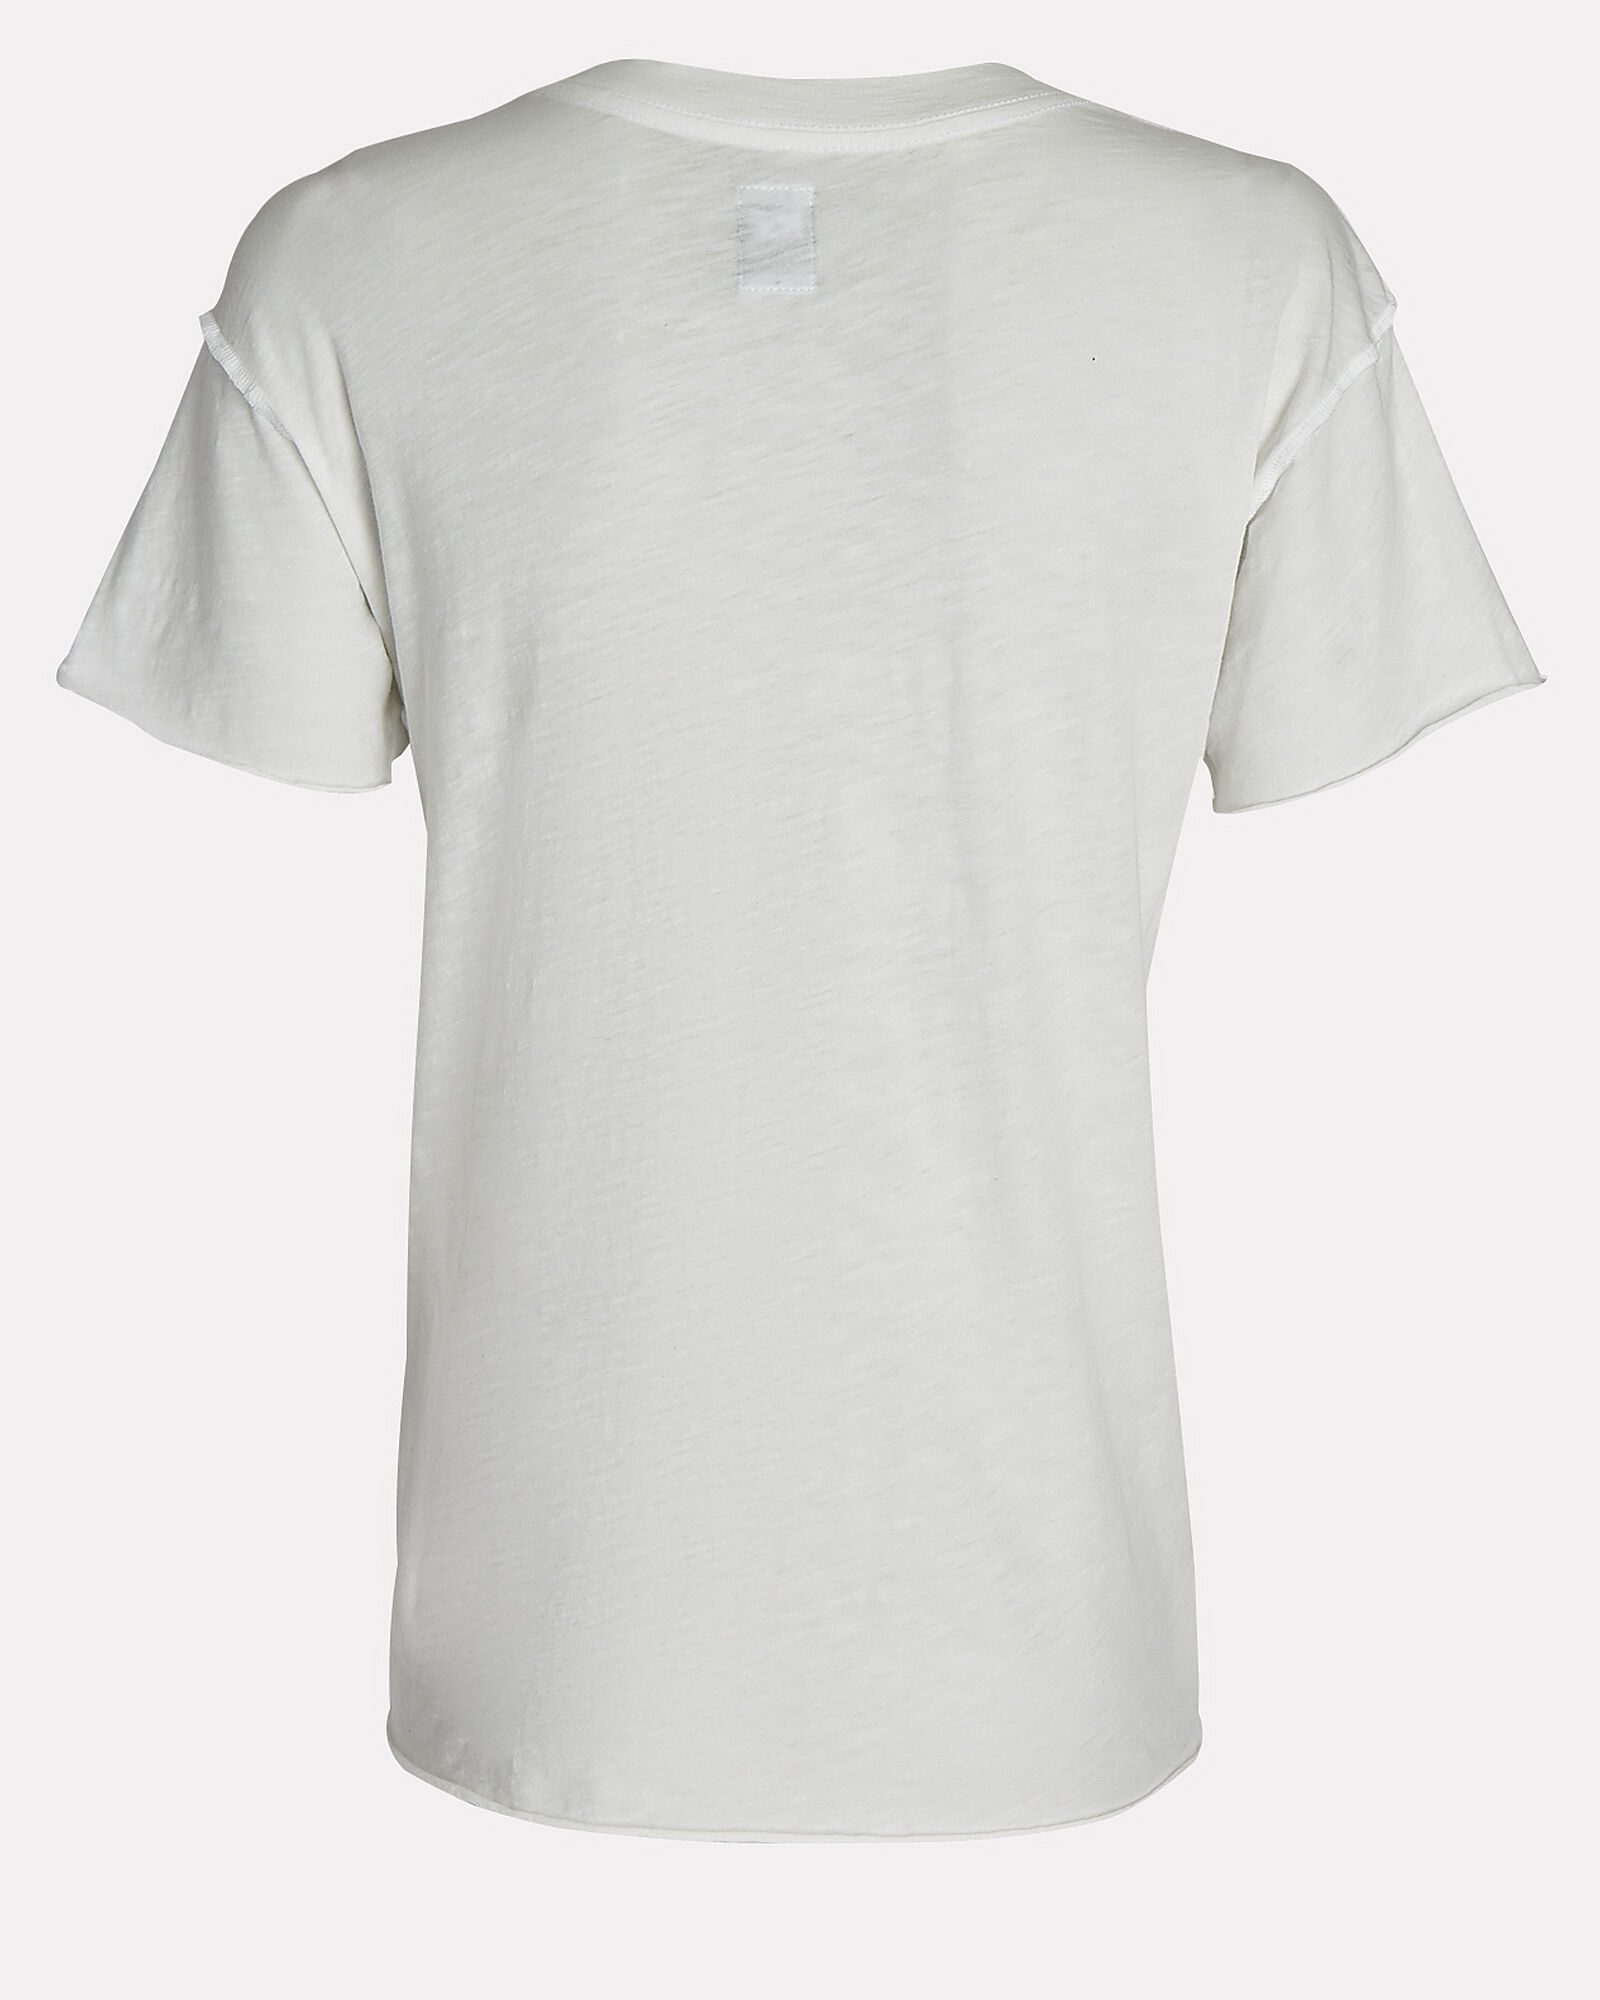 Moore Distressed T-Shirt, WHITE, hi-res